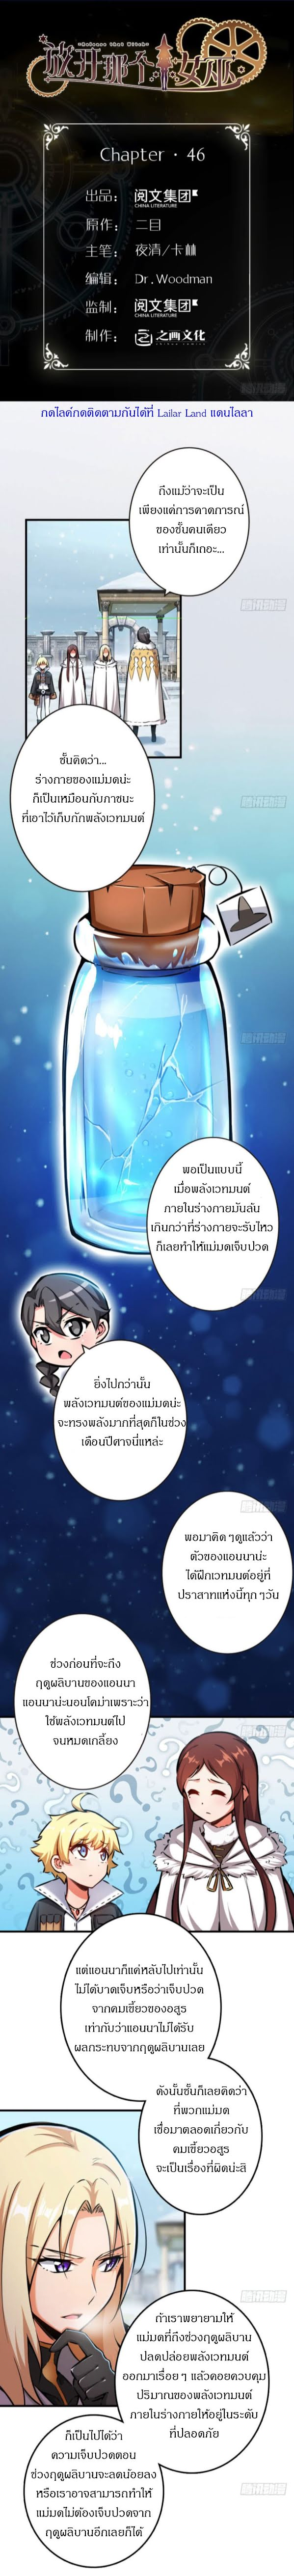 Release that witch ตอนที่ 46